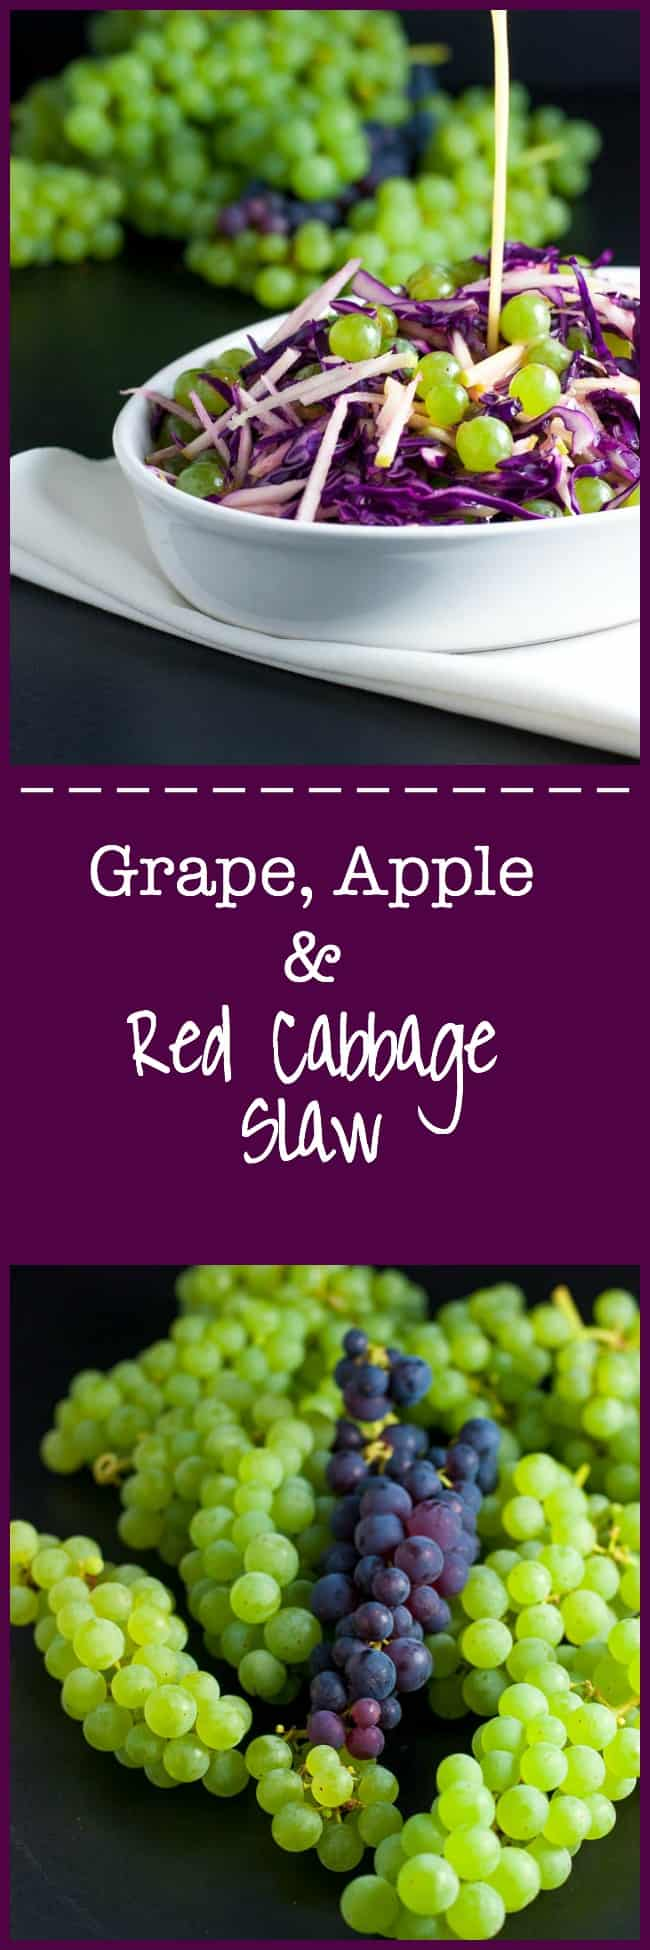 Grape, Apple and Red Cabbage Slaw. A paleo side dish, full of Vitamin C! It's crunchy, tart and sweet, all at the same time and it's dressed with a light apple cider and honey vinaigrette that adds just the touch of sweetness needed to perfectly balance the flavours.  www.flavourandsavour.com